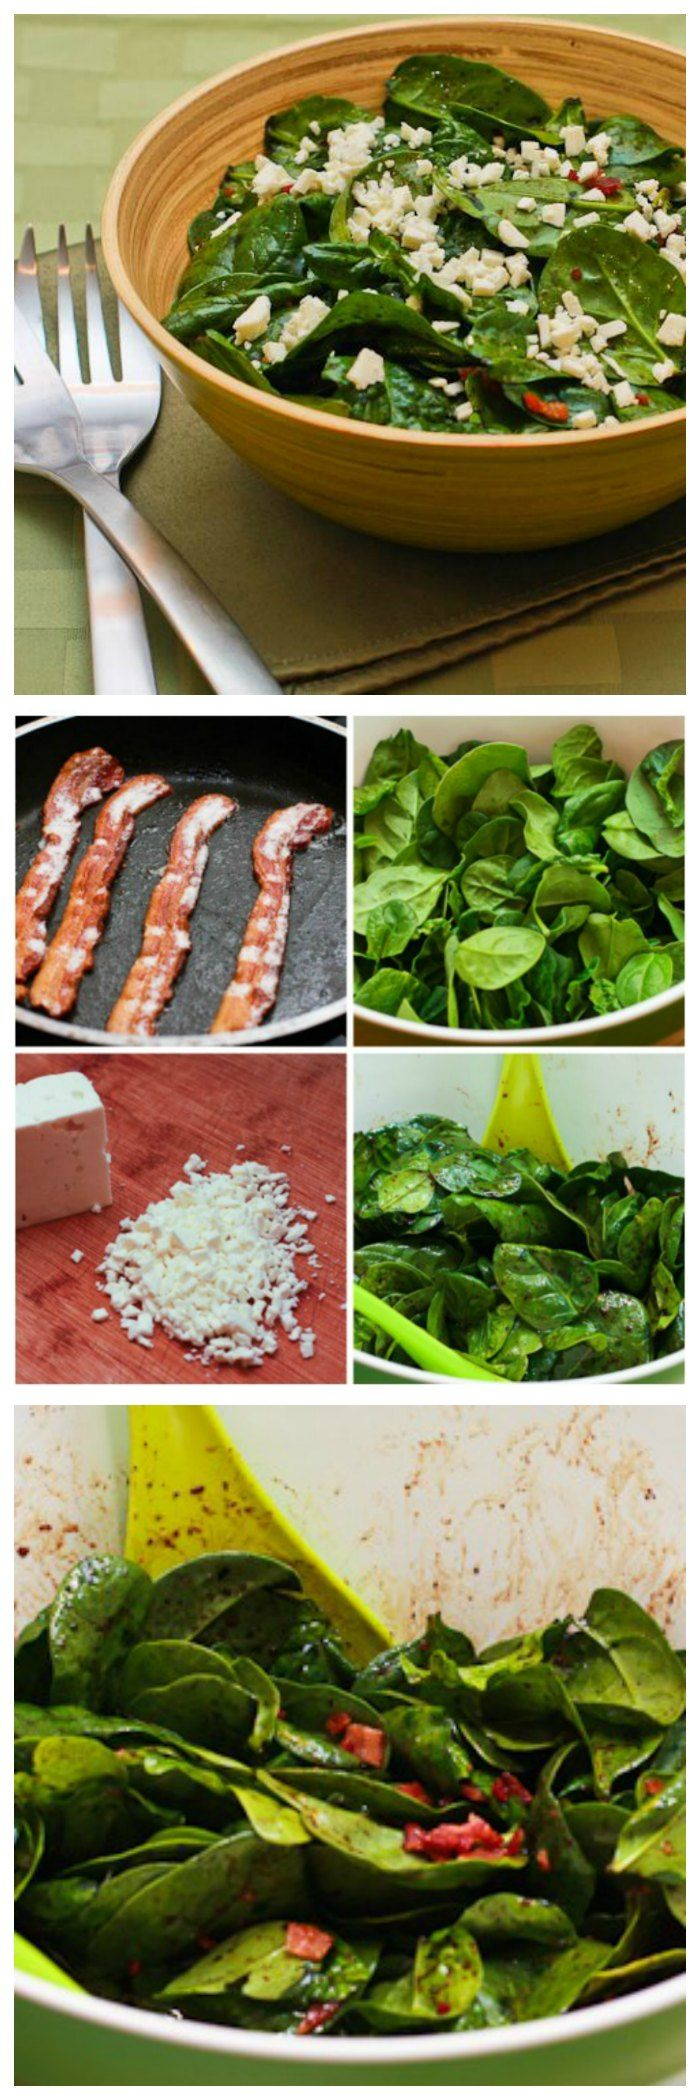 ... Spinach Salad with Bacon and Feta | Spinach Salads, Feta and Spinach